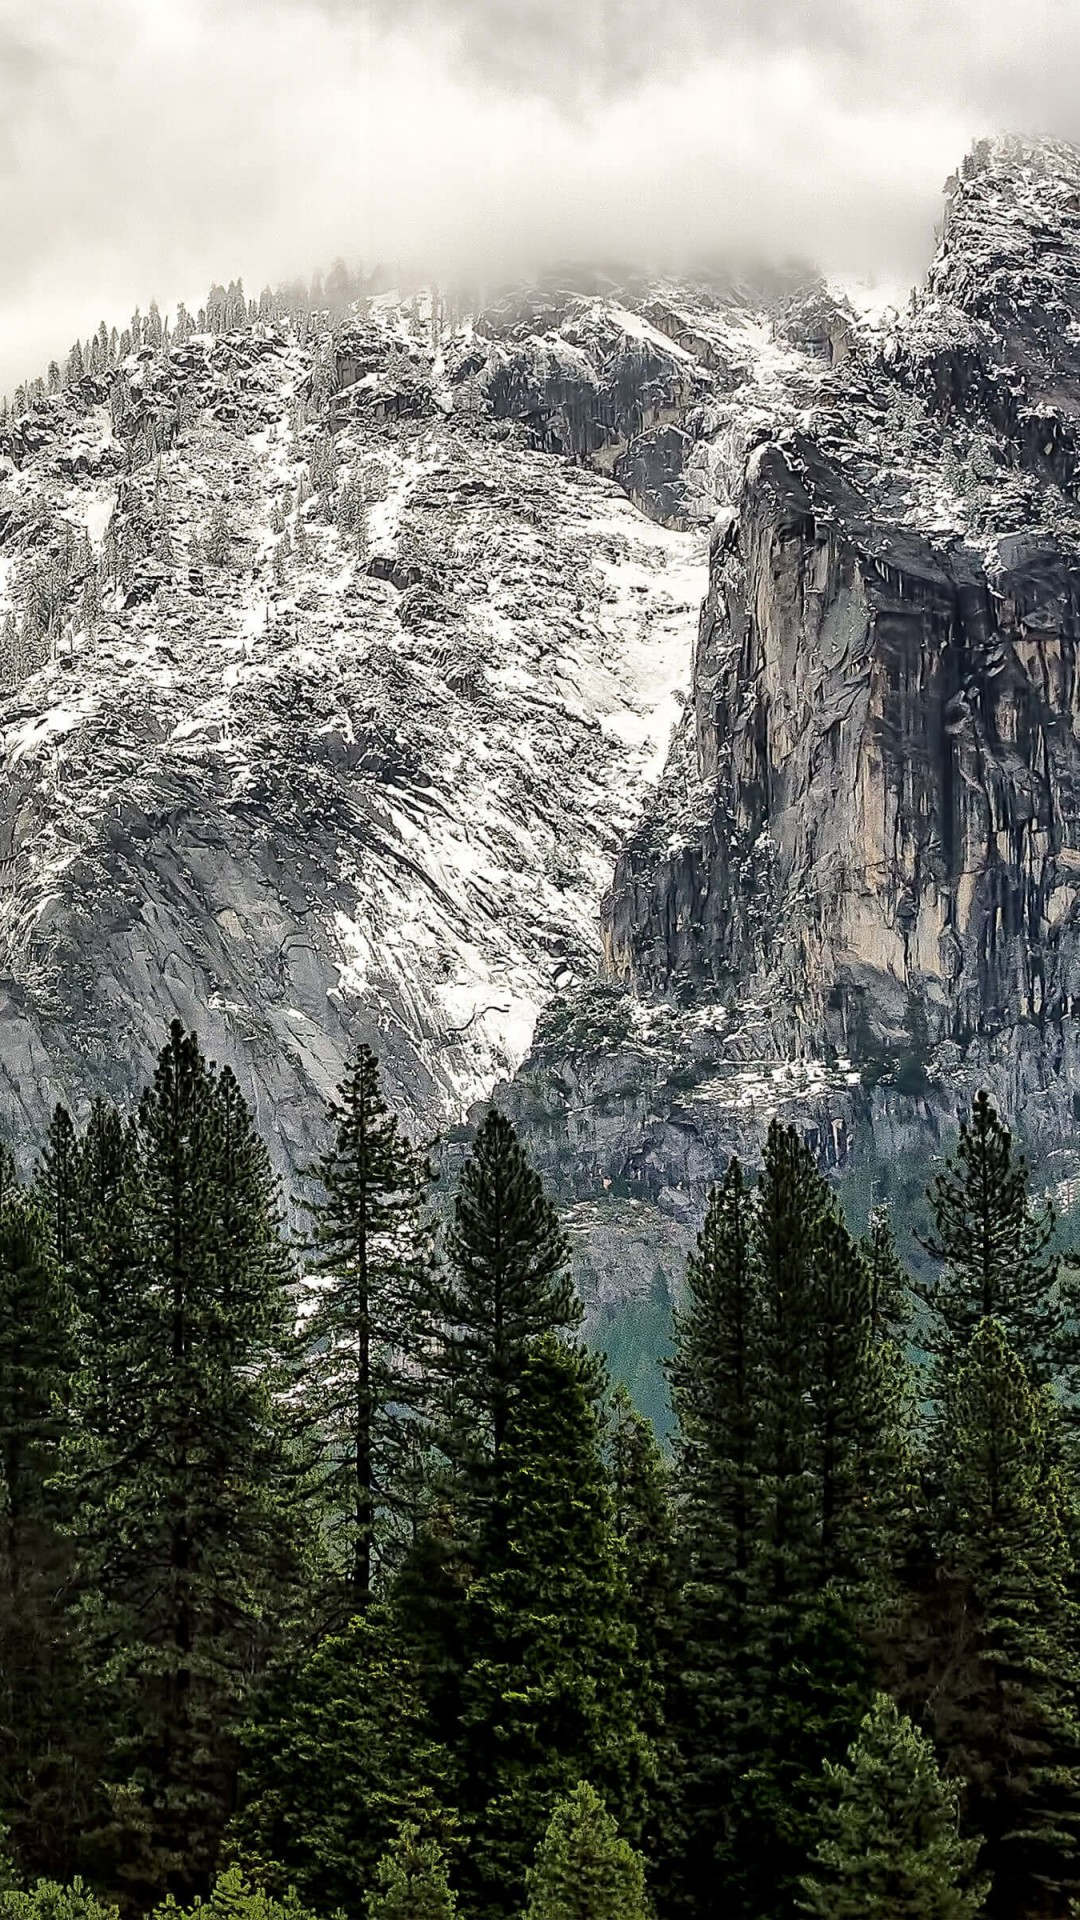 Winter Day at Yosemite National Park Wallpaper for Motorola Moto X